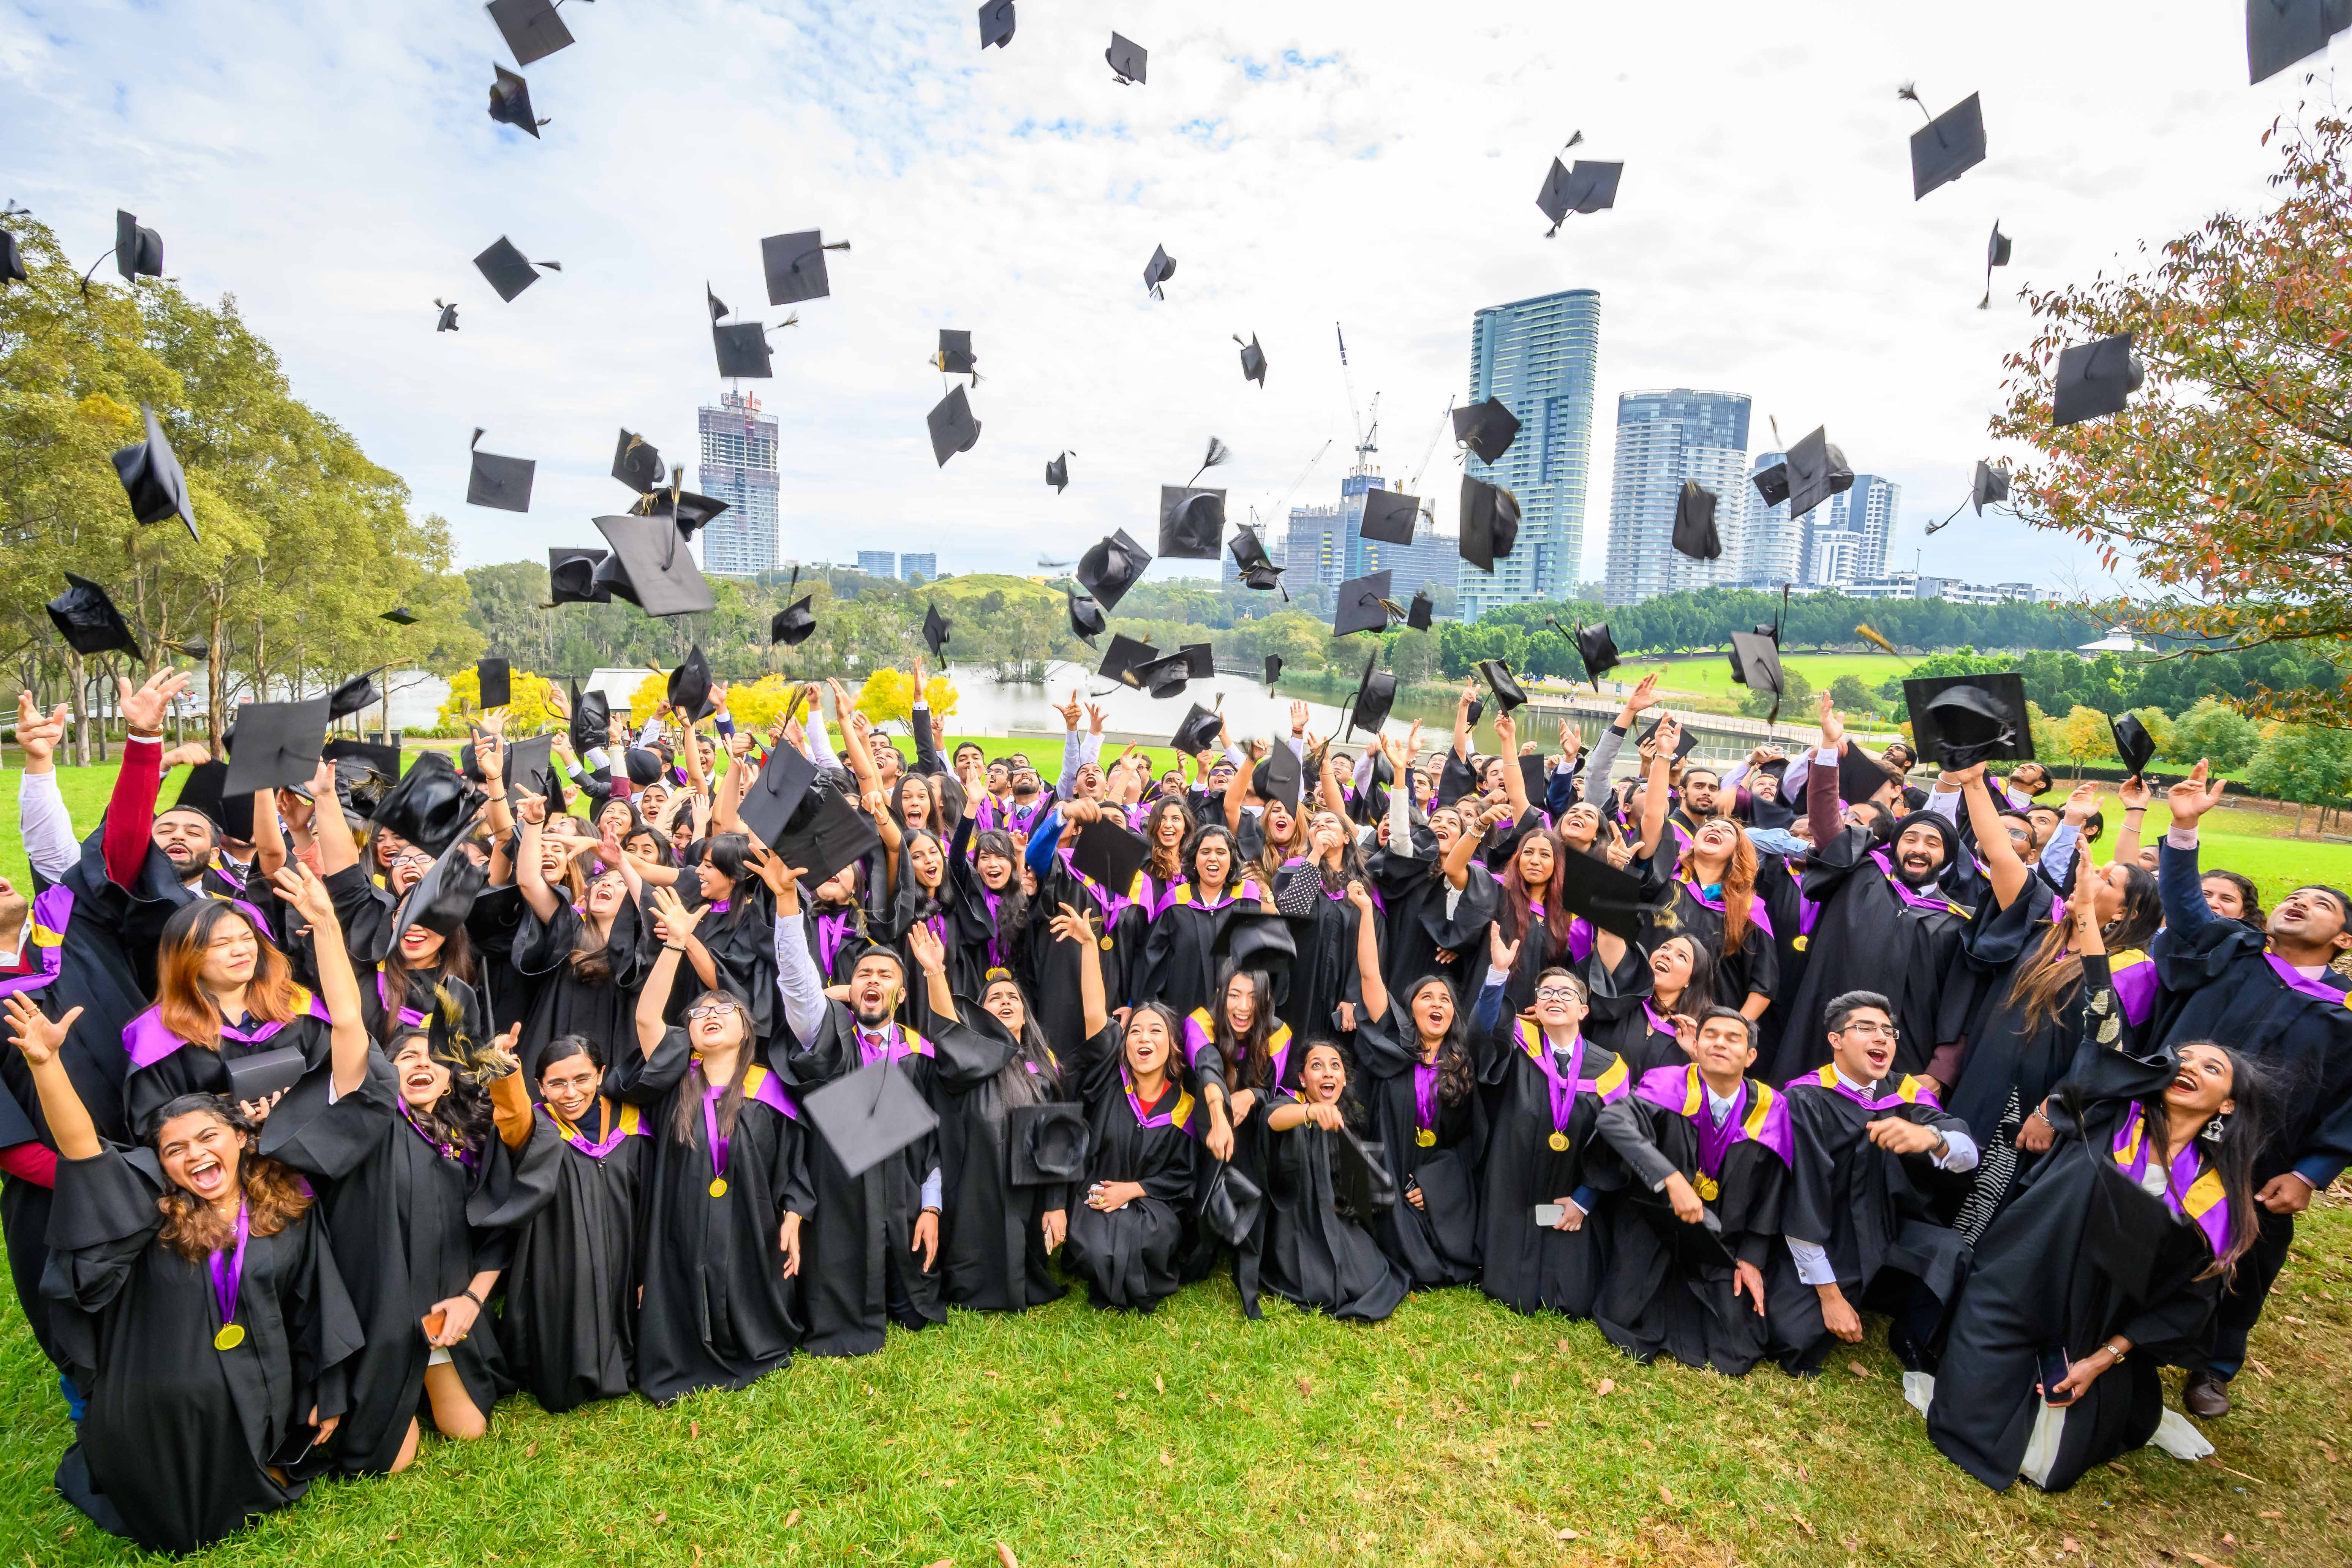 Australia emerges as the top employment location for SP Jain's Undergraduates from the Class of 2019